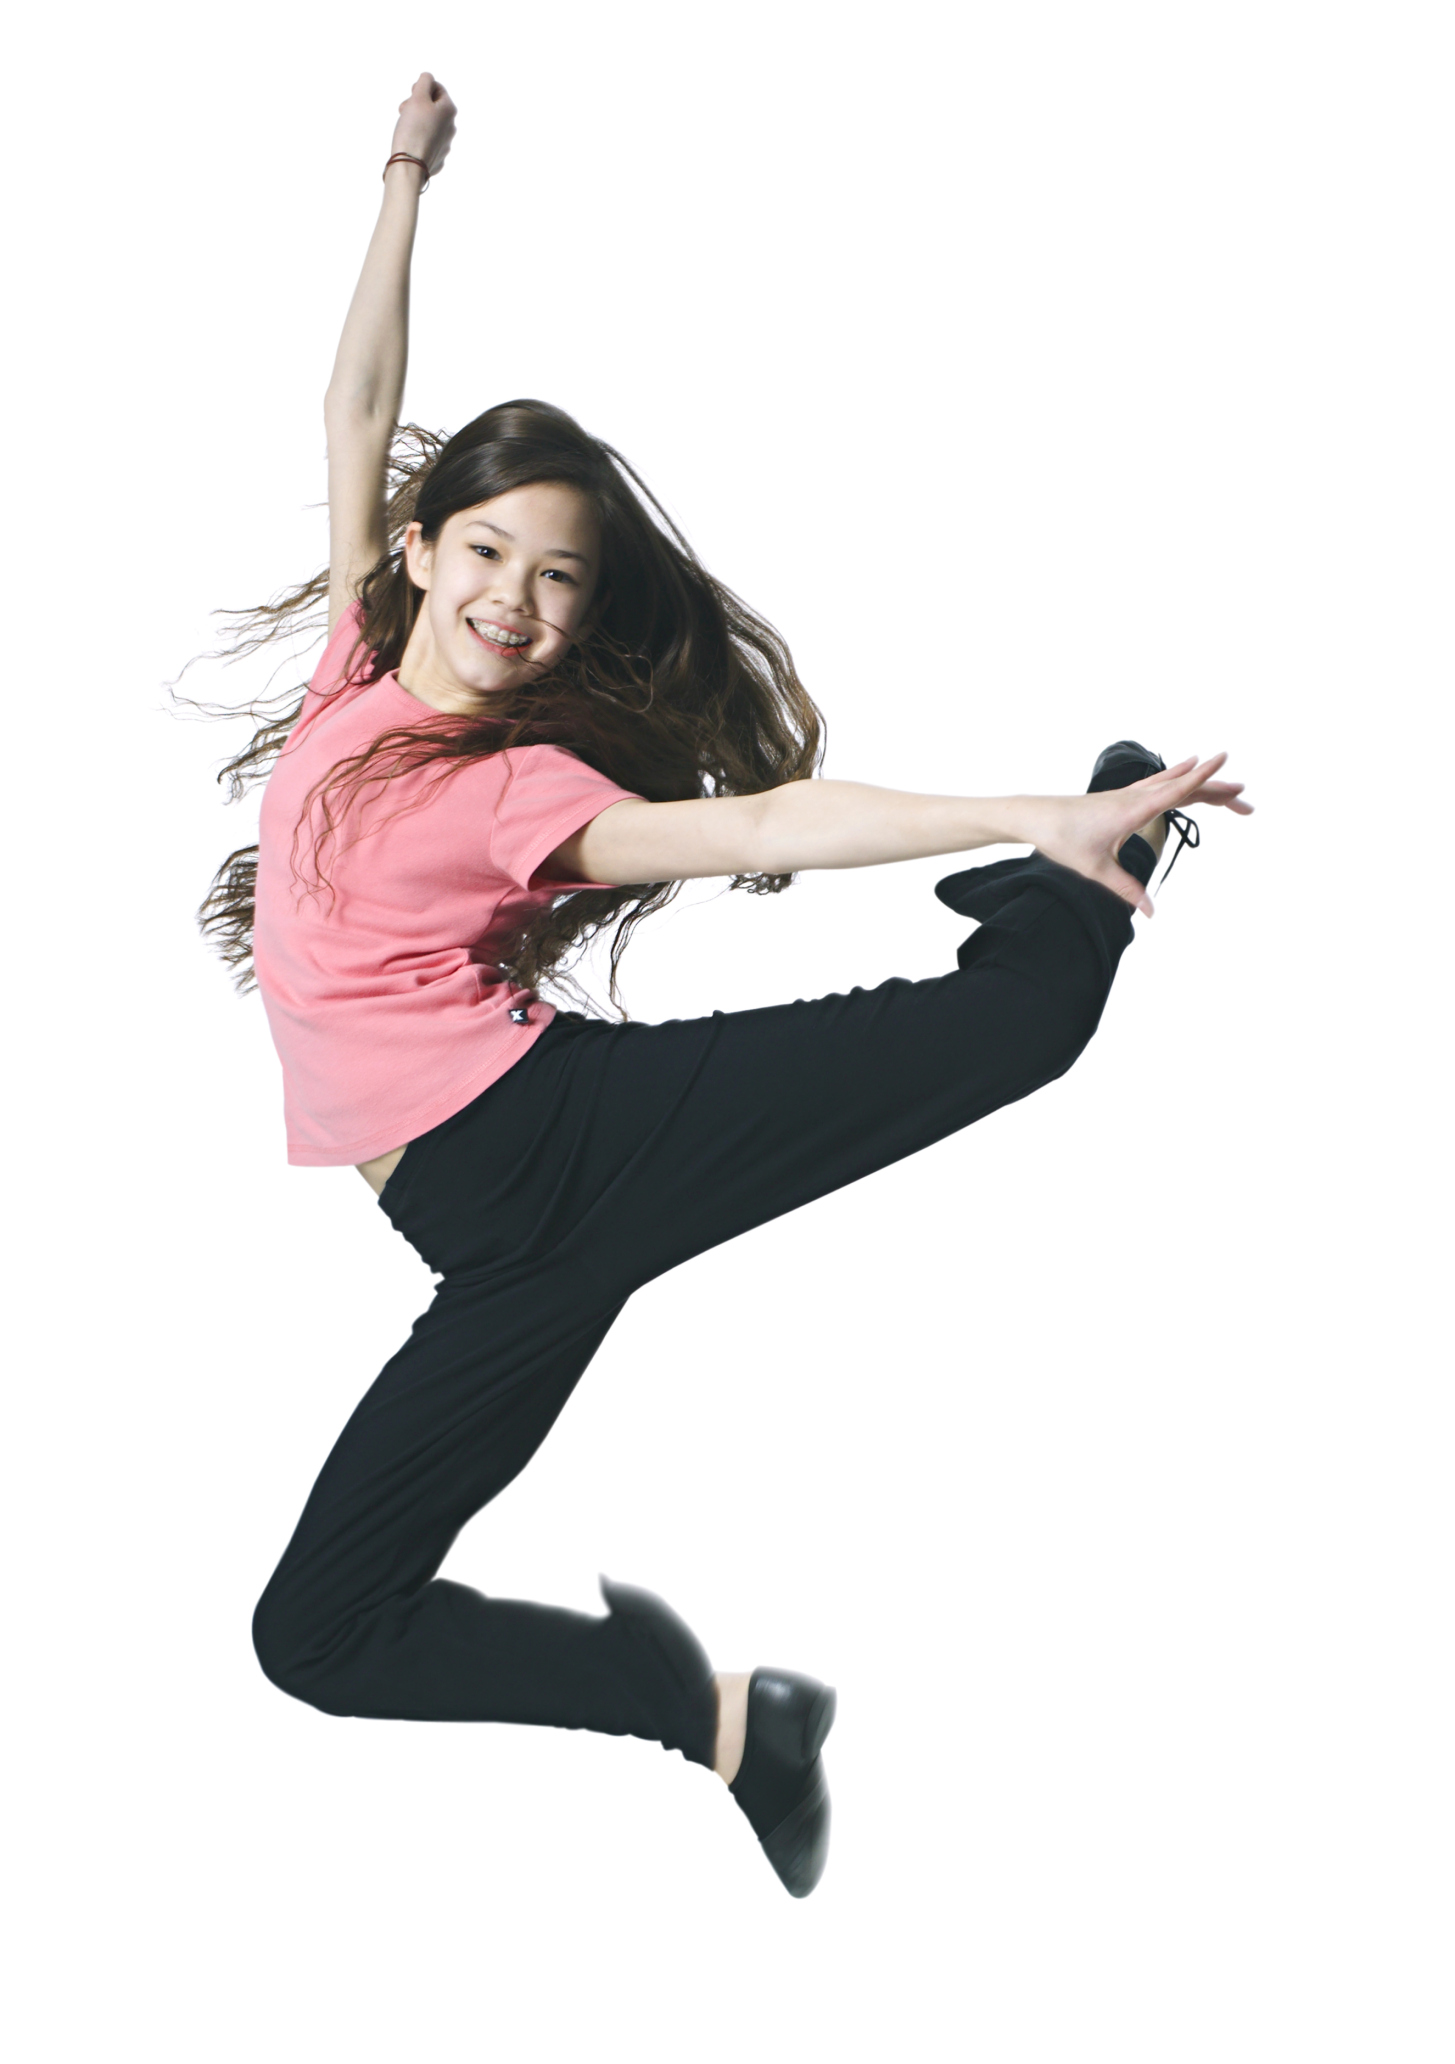 Full Body Shot Of A Female Child As She Playfully Dances And Jumps Through The Air